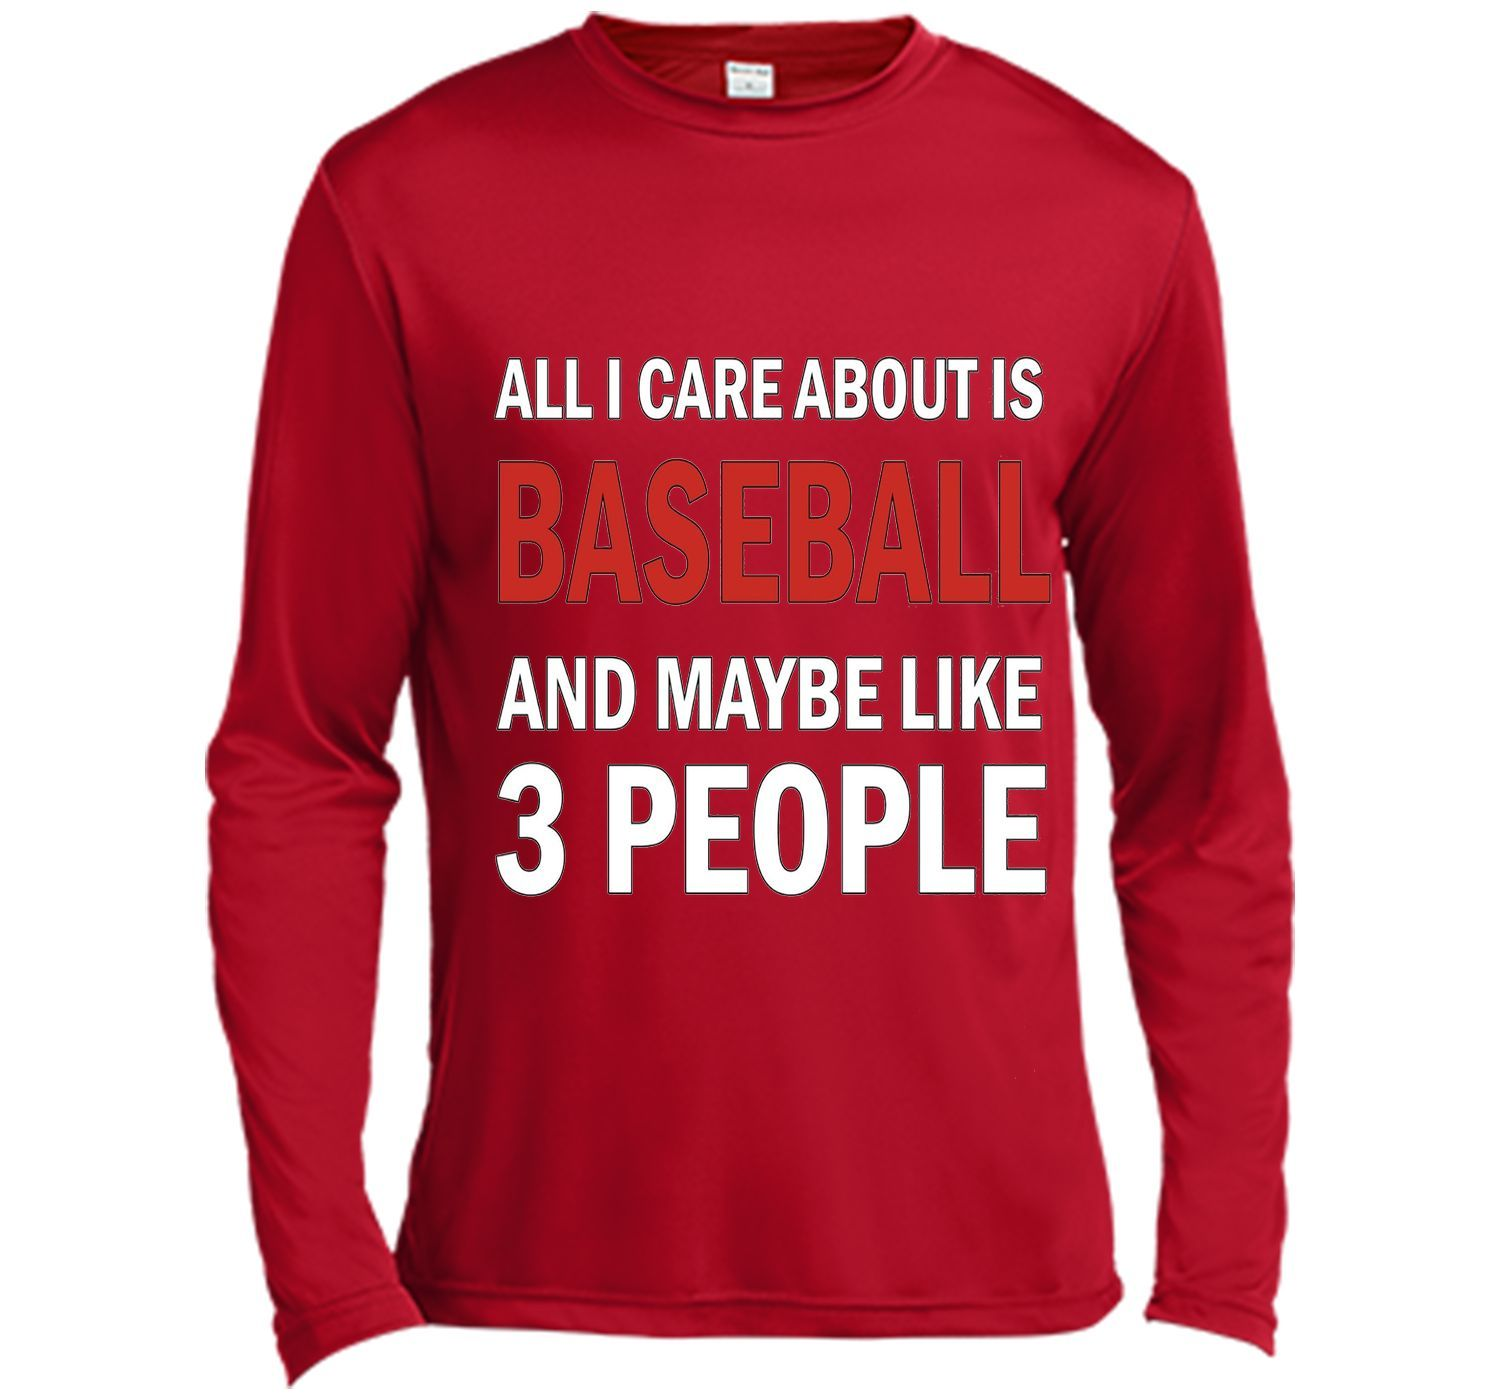 All I Care About is Baseball & Maybe Like 3 People Shirt